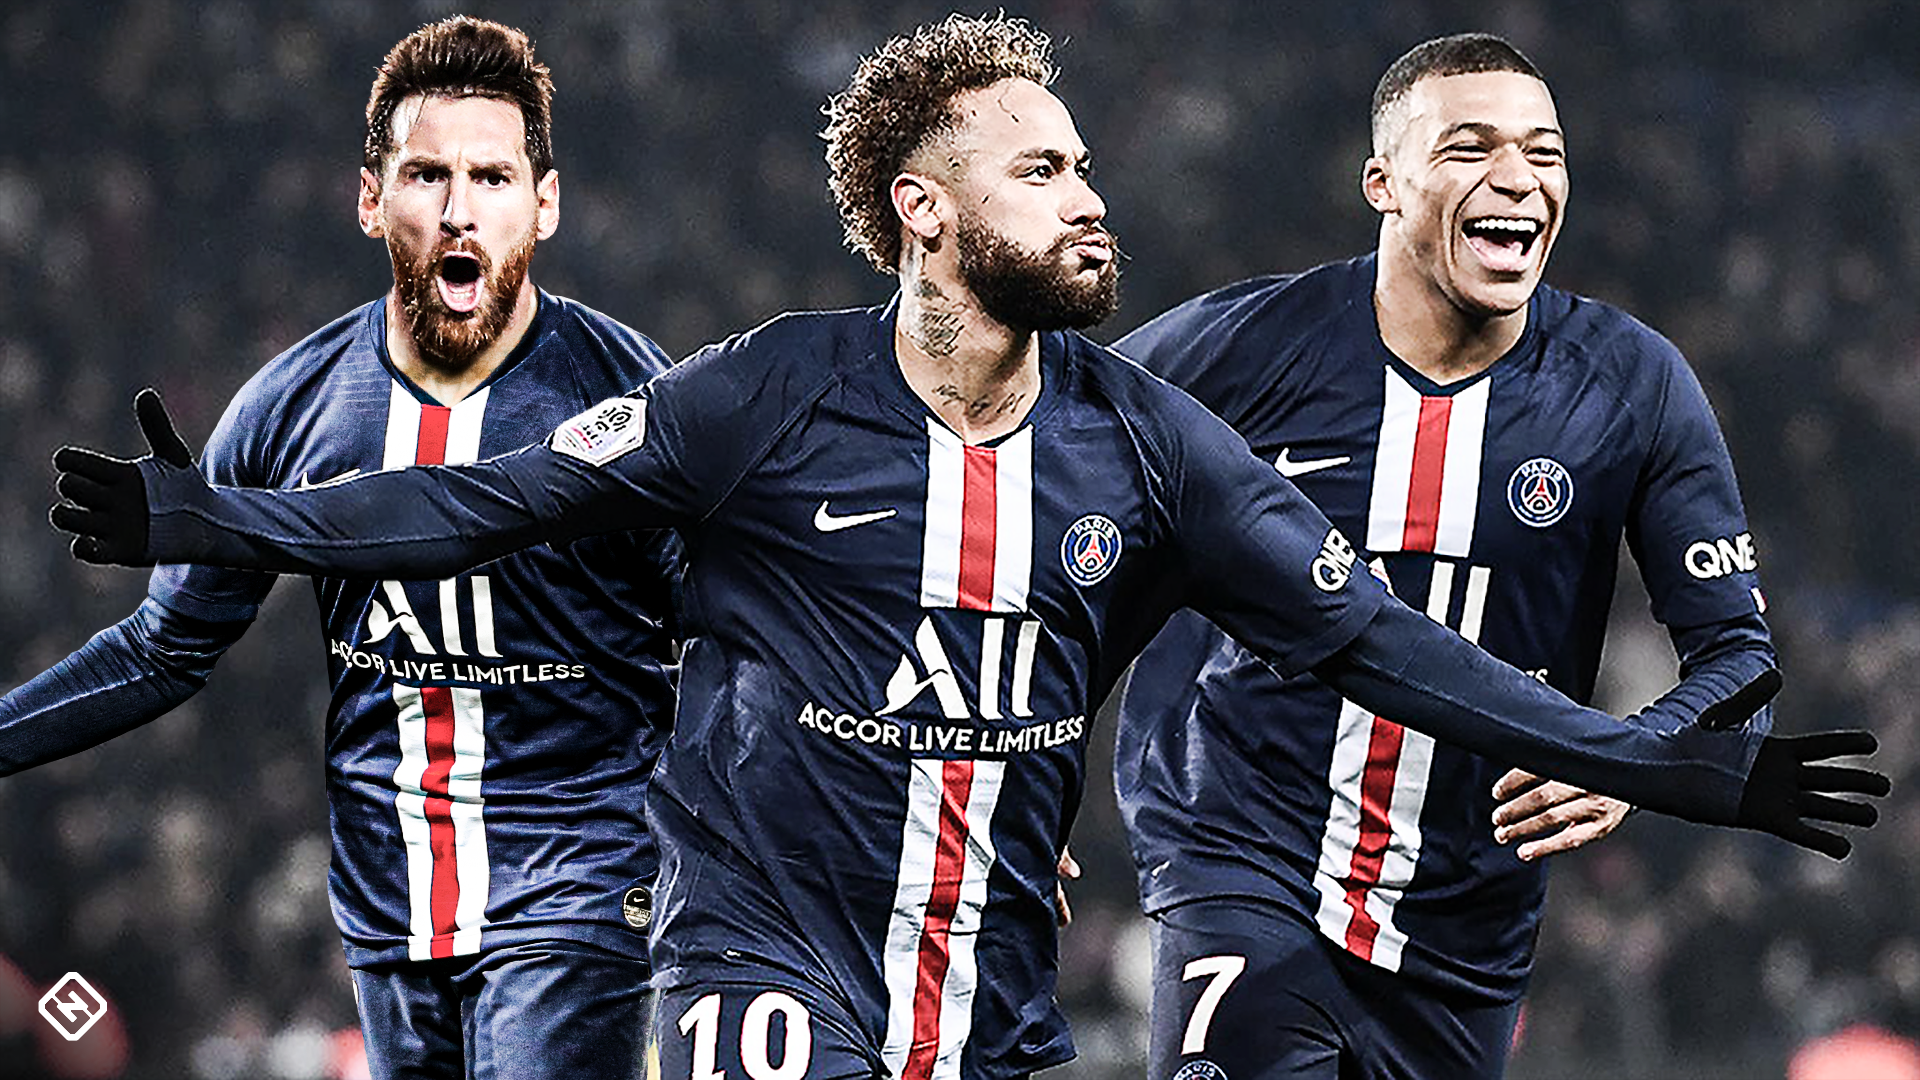 PSG match schedule: When is Lionel Messi playing for Paris Saint-Germain?